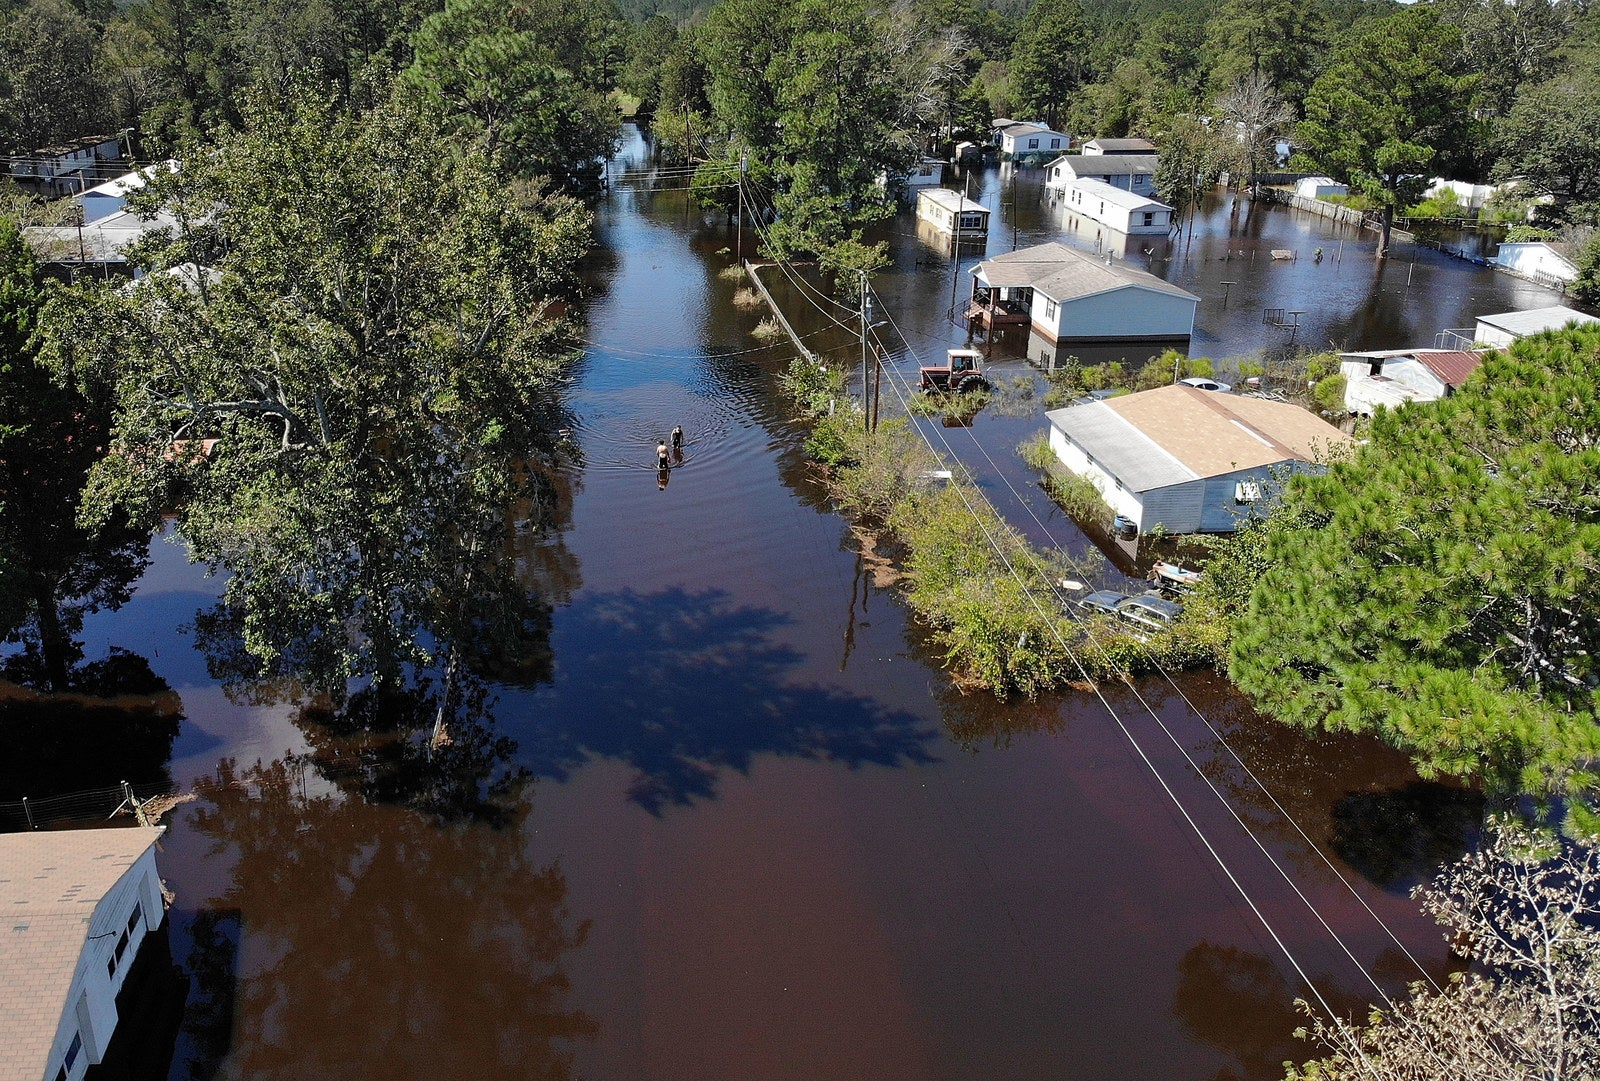 Jovani Quintano and Carlos Gomez walk through a flooded neighborhood after heavy rains brought on by Hurricane Florence, Sept. 19, in Lumberton, North Carolina.